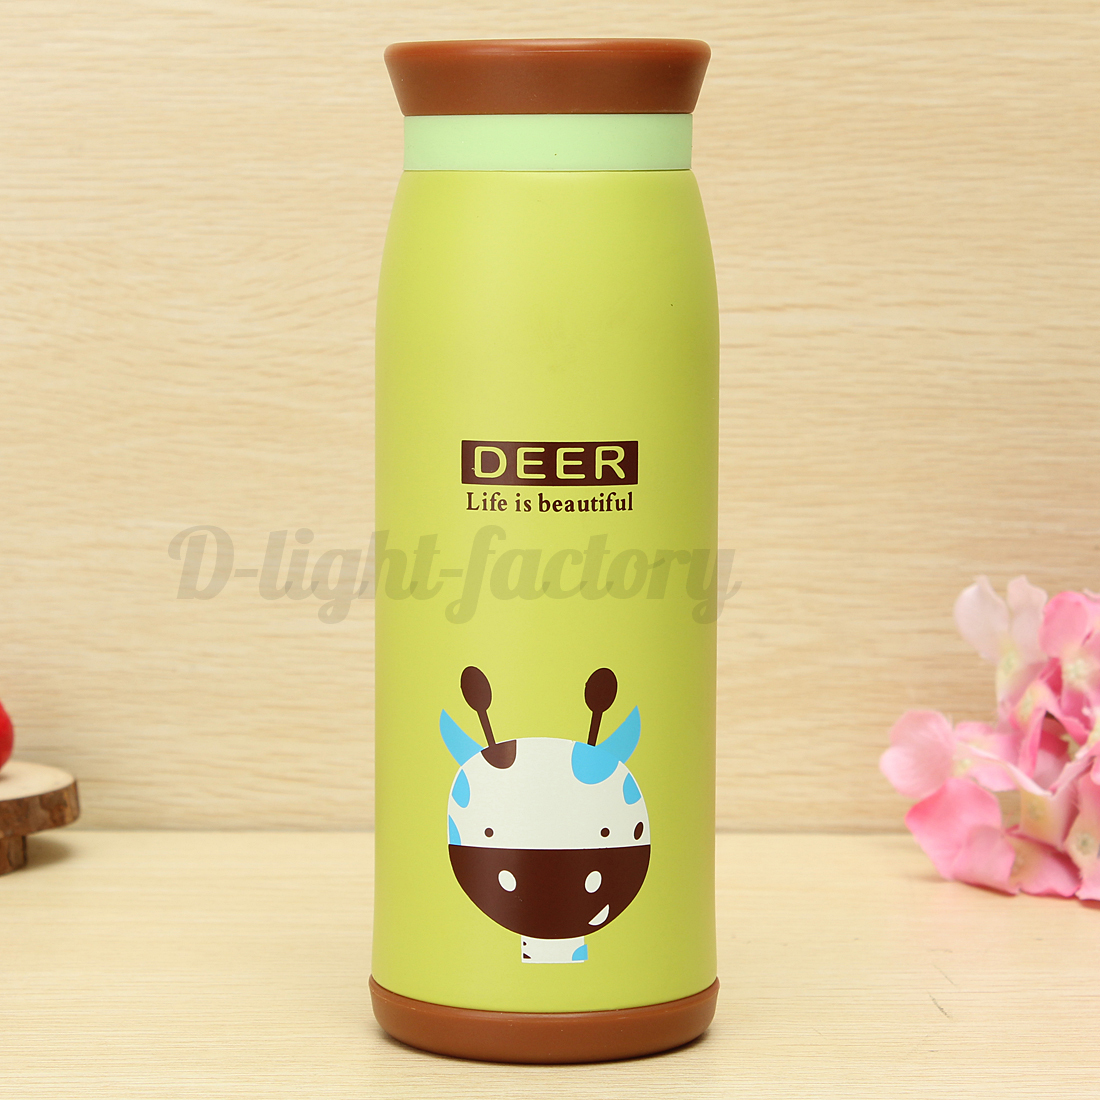 500 ml acier inoxydable vide bouteille thermos mug tasse caf cadeau de no l art ebay. Black Bedroom Furniture Sets. Home Design Ideas